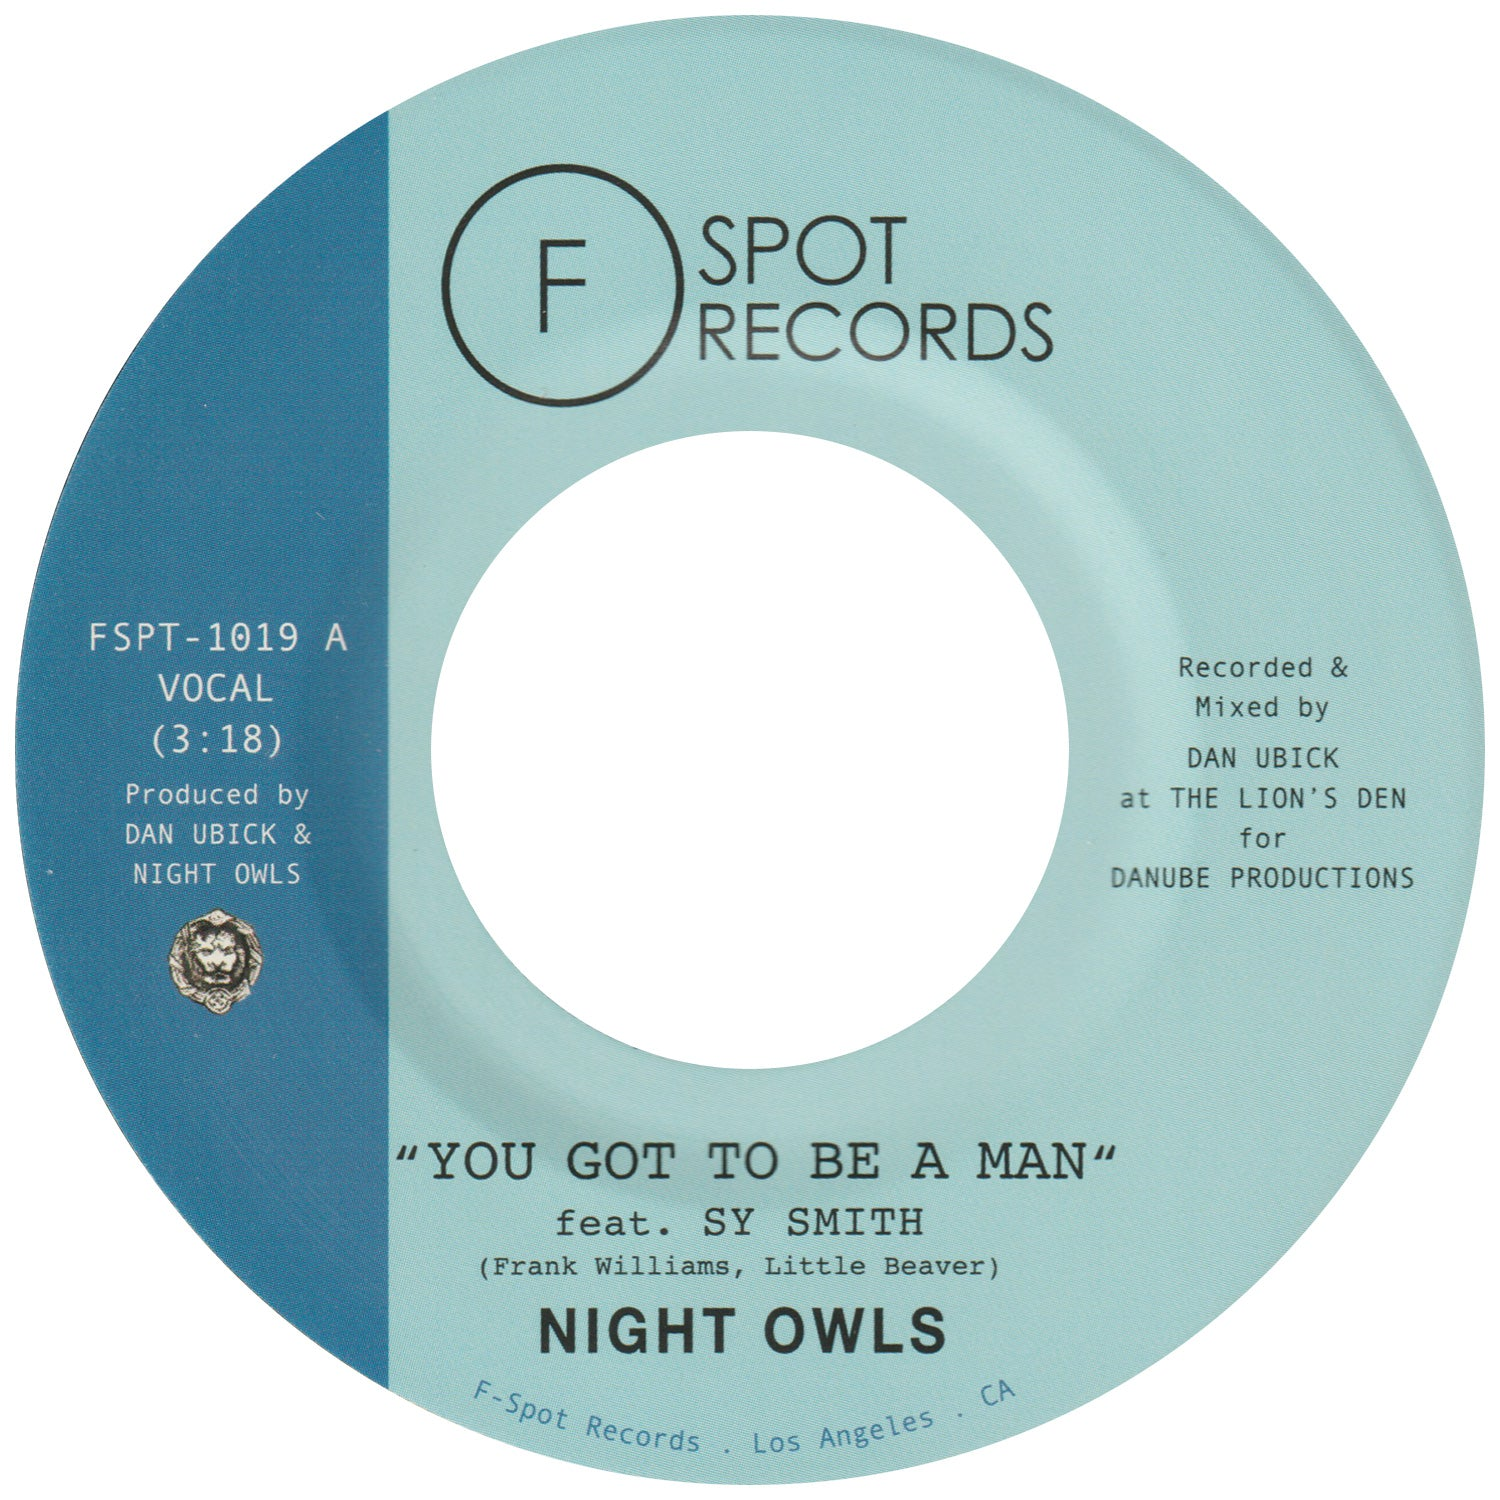 NIGHT OWLS - You Got To Be A Man (feat. Sy Smith) / Gimme Little Sign (feat. Chris Dowd)